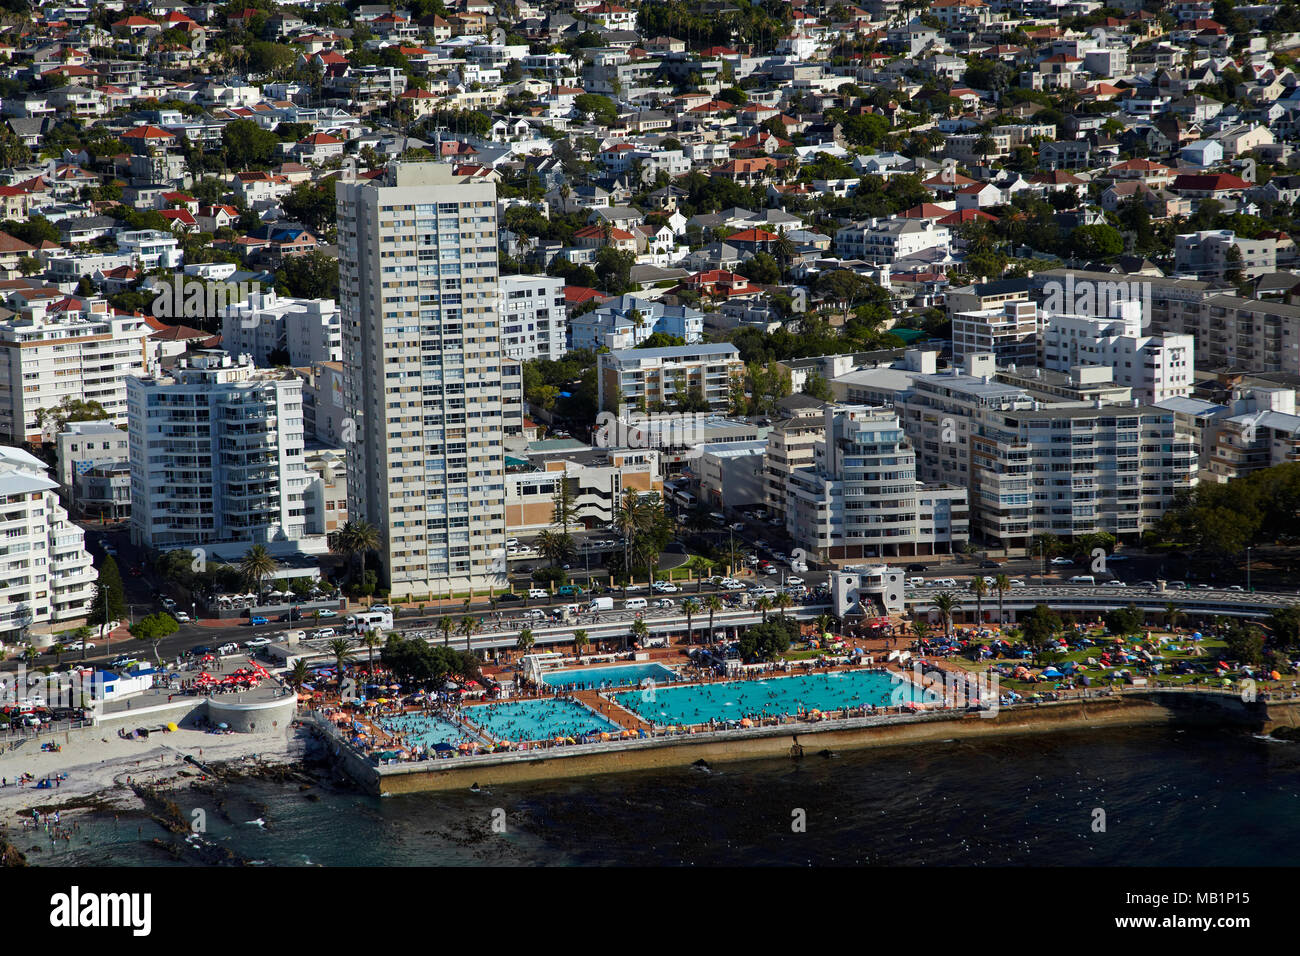 Sea Point Swimming Pool, Sea Point, Cape Town, South Africa - aerial - Stock Image